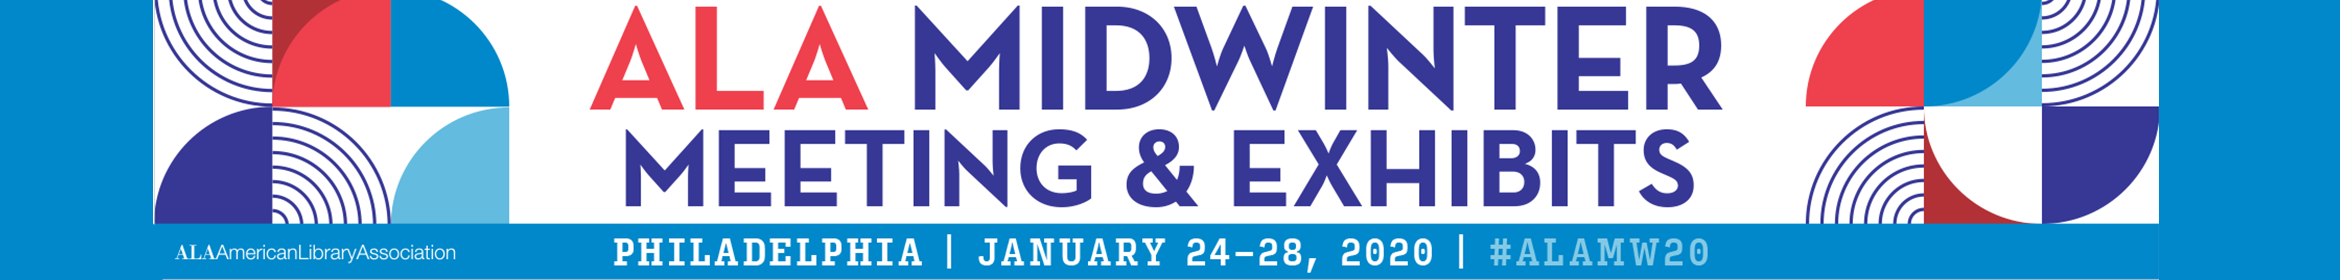 2020 Midwinter Meeting Main banner